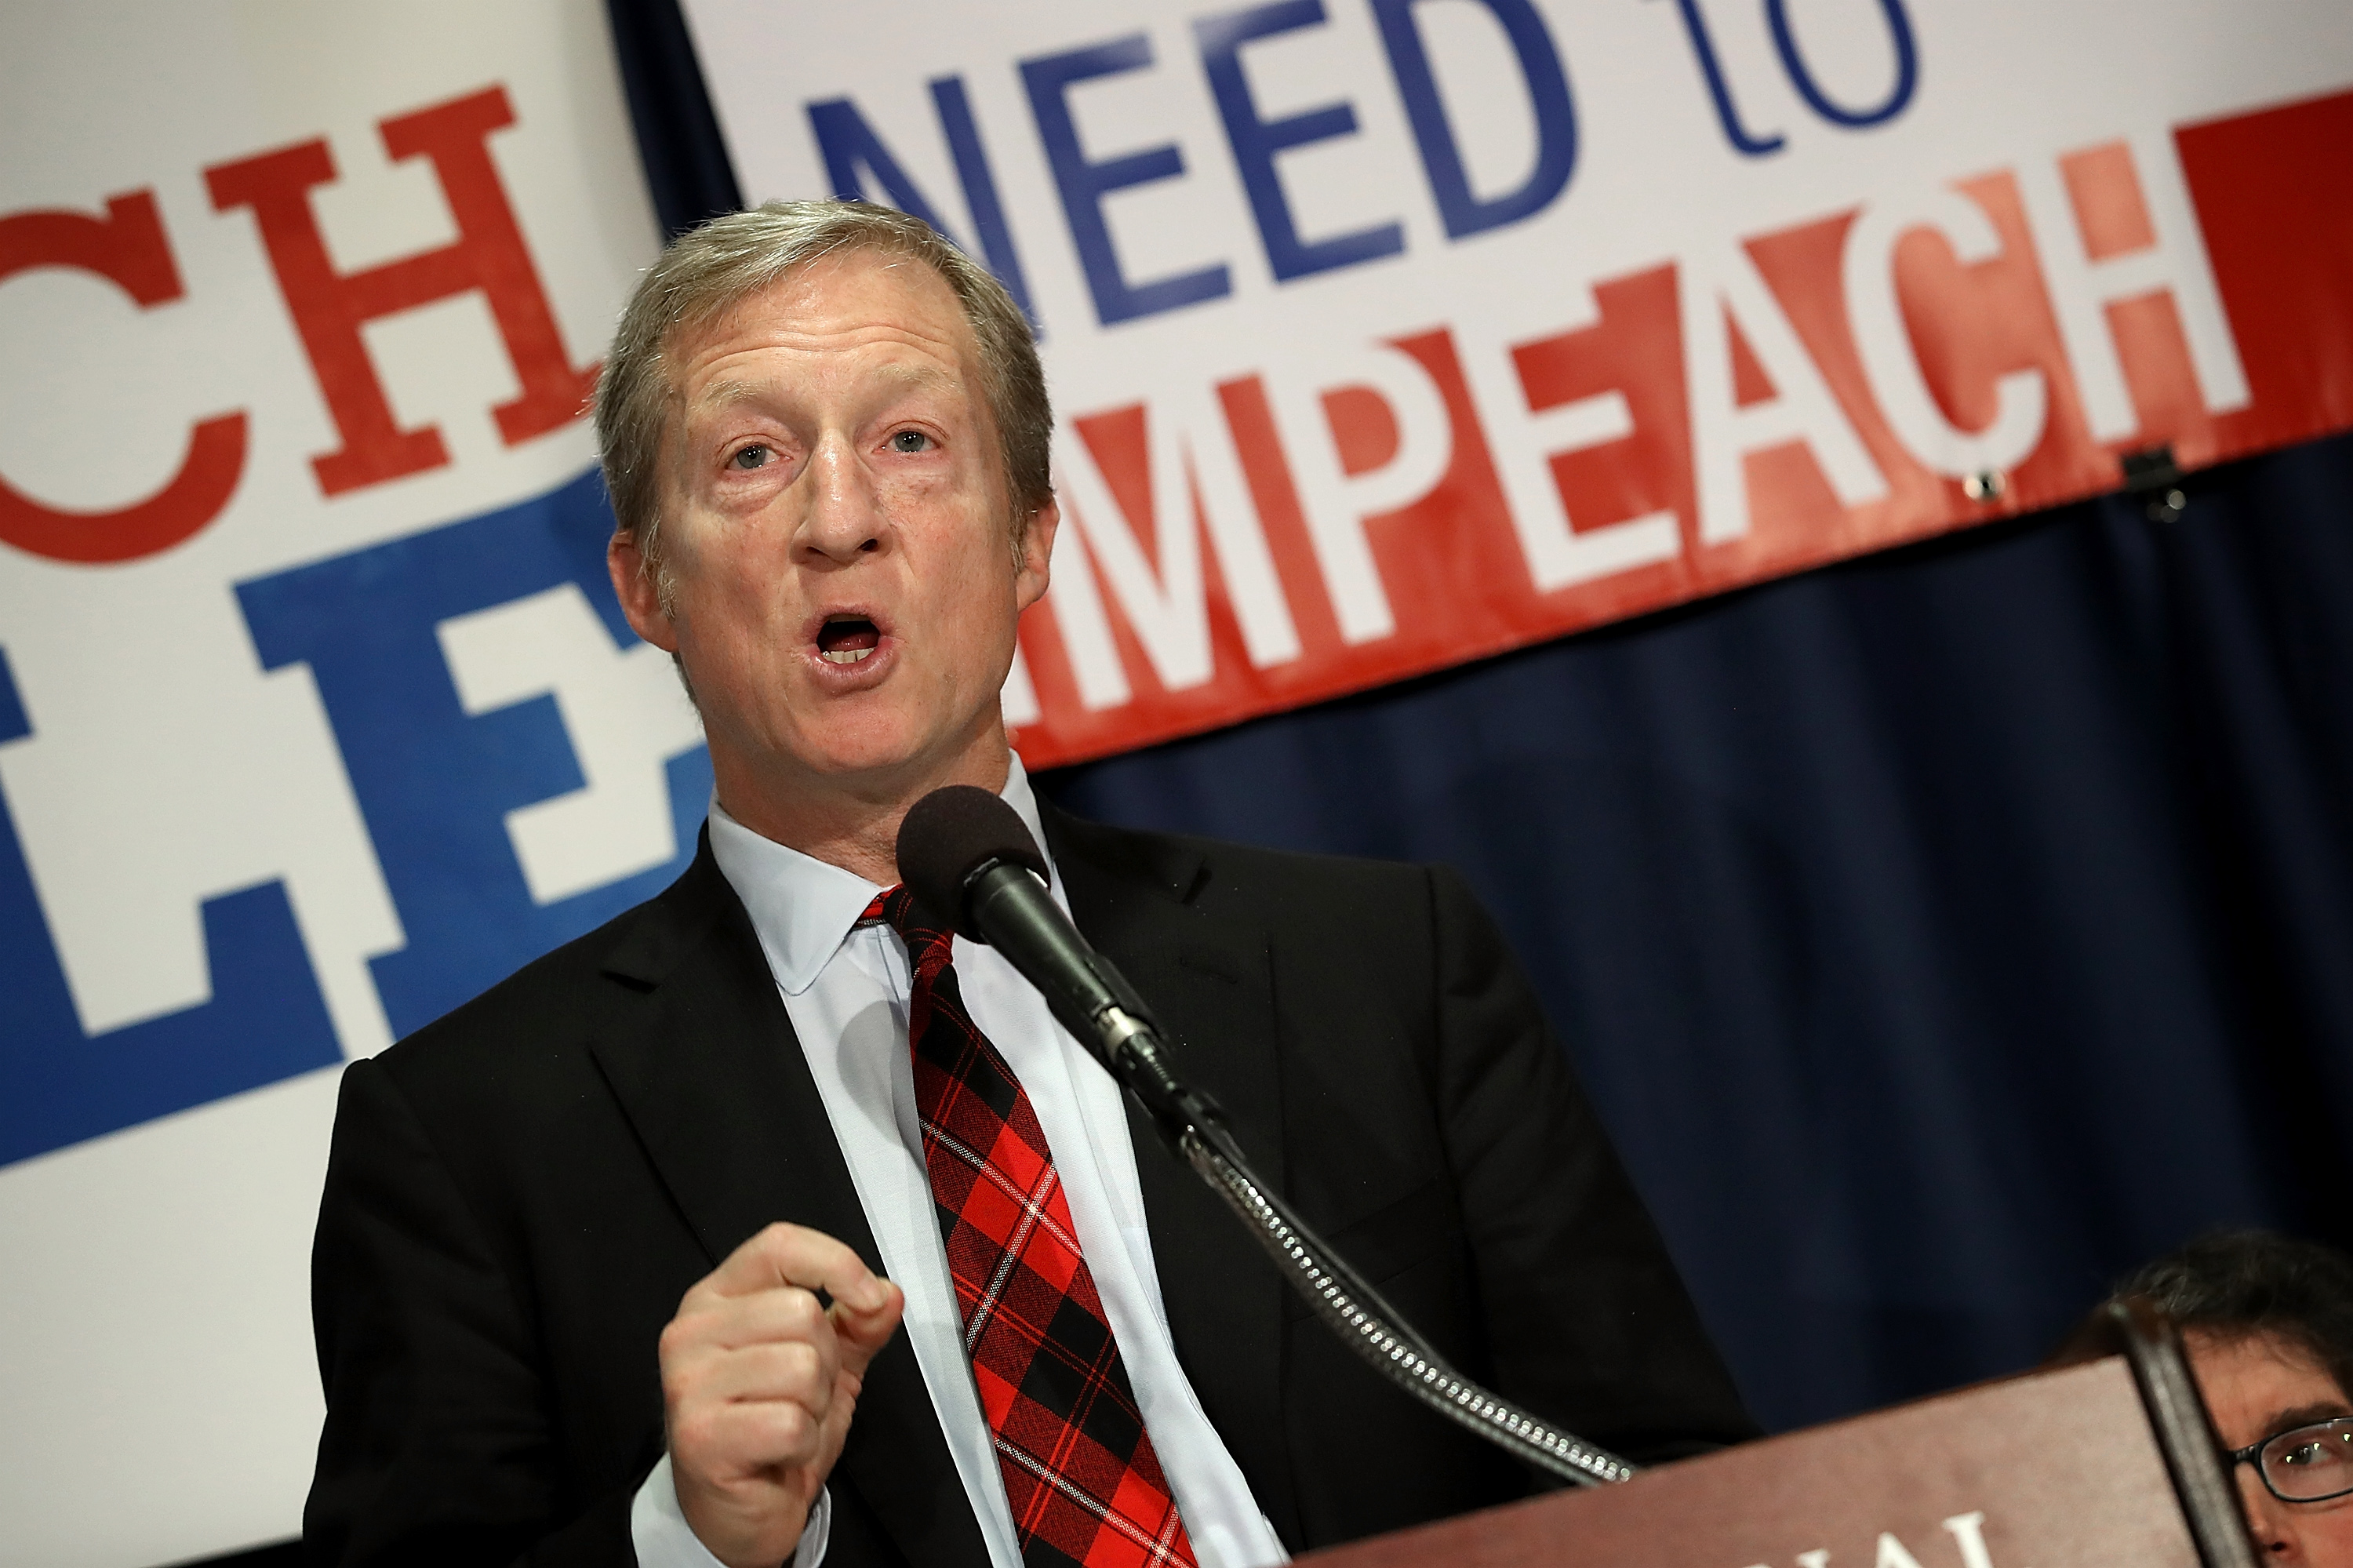 Billionaire hedge fund manager and philanthropist Tom Steyer speaks during a press conference at the National Press Club December 6, 2017 . (Win McNamee/Getty Images)